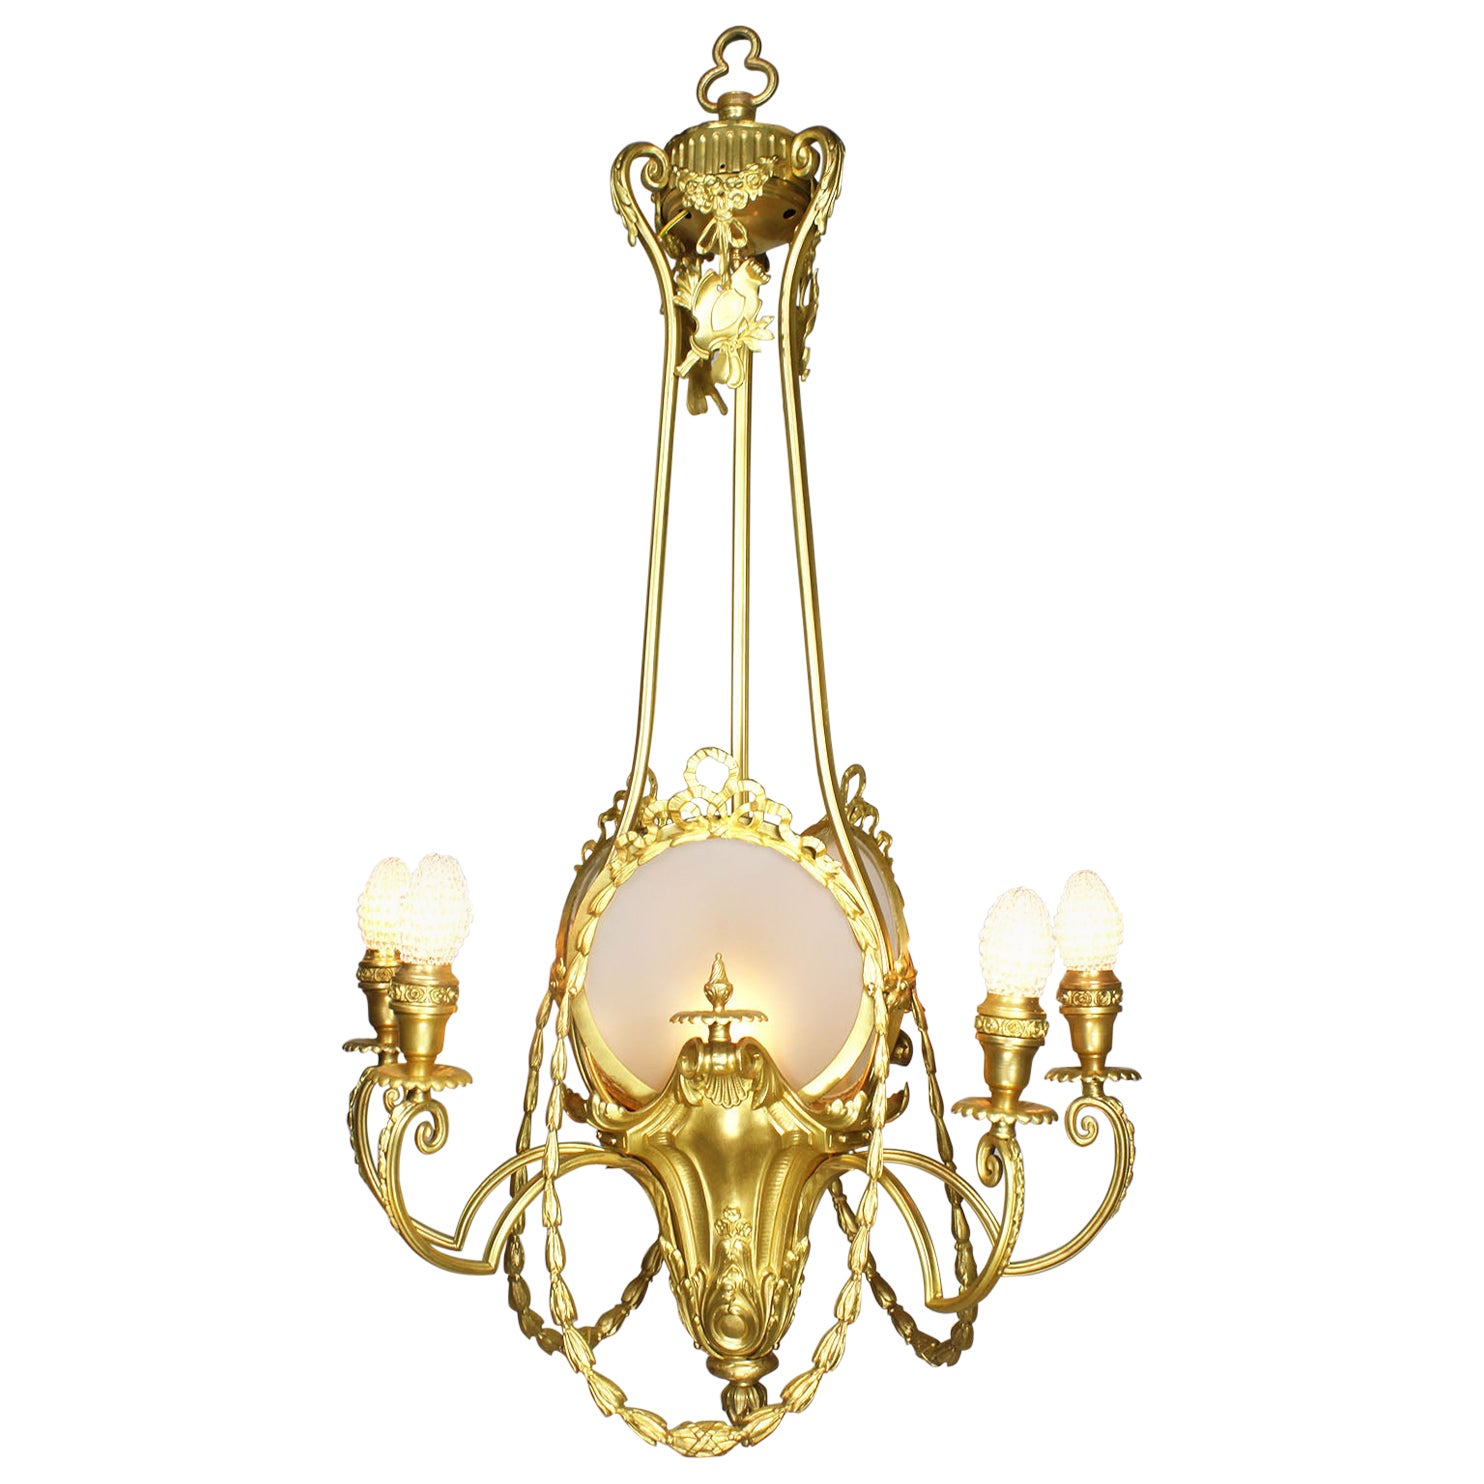 French Belle Époque Neoclassical Revival Style Gilt Metal Six-Light Chandelier